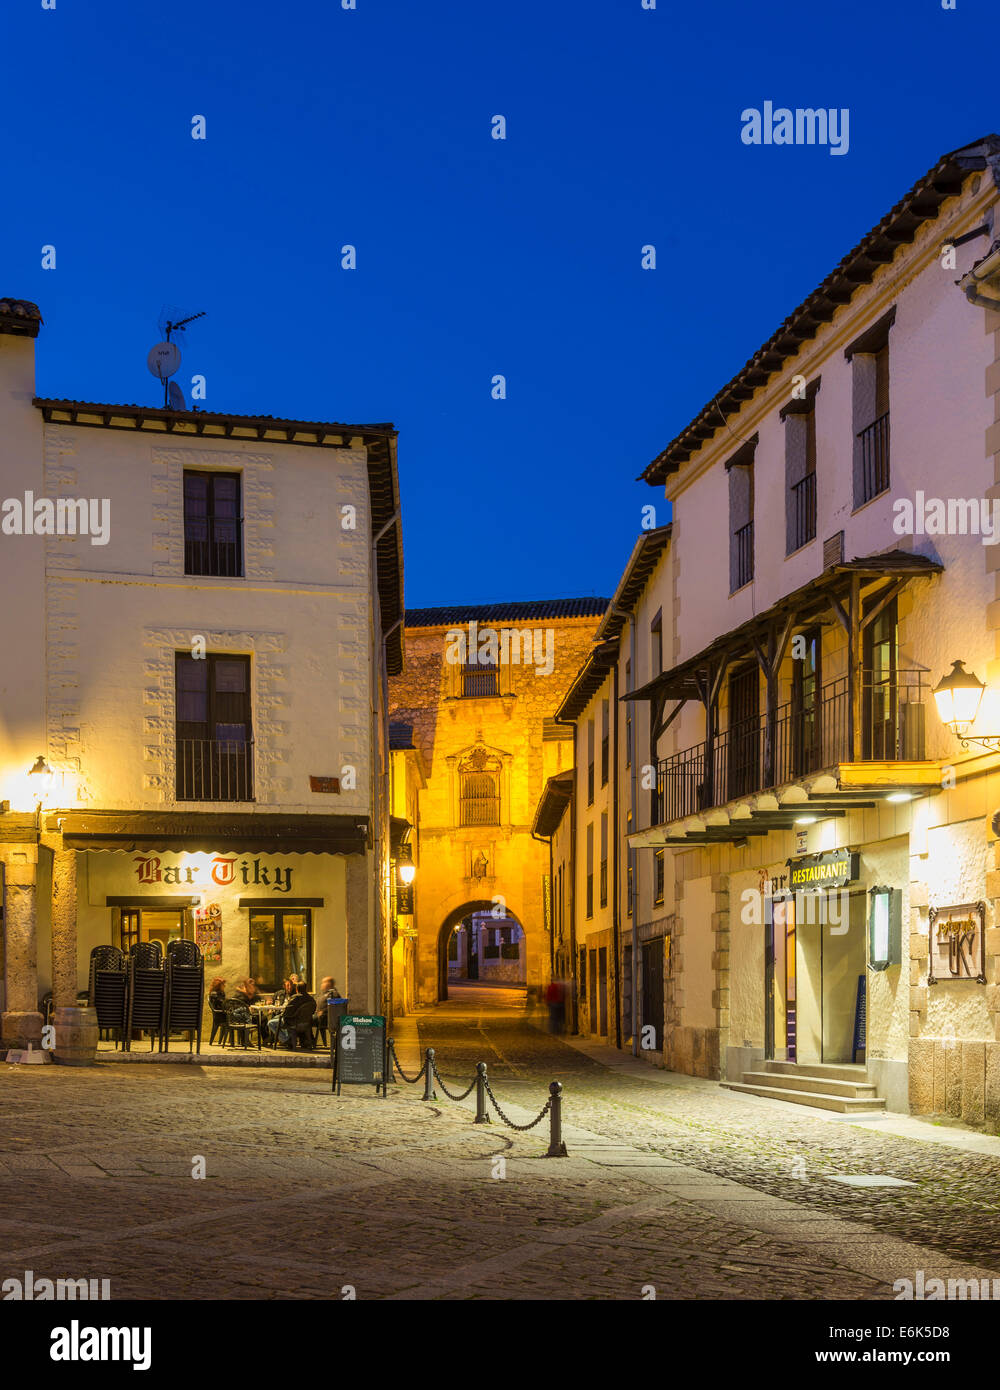 Main square at night, Covarrubias, Castile and León, Spain - Stock Image